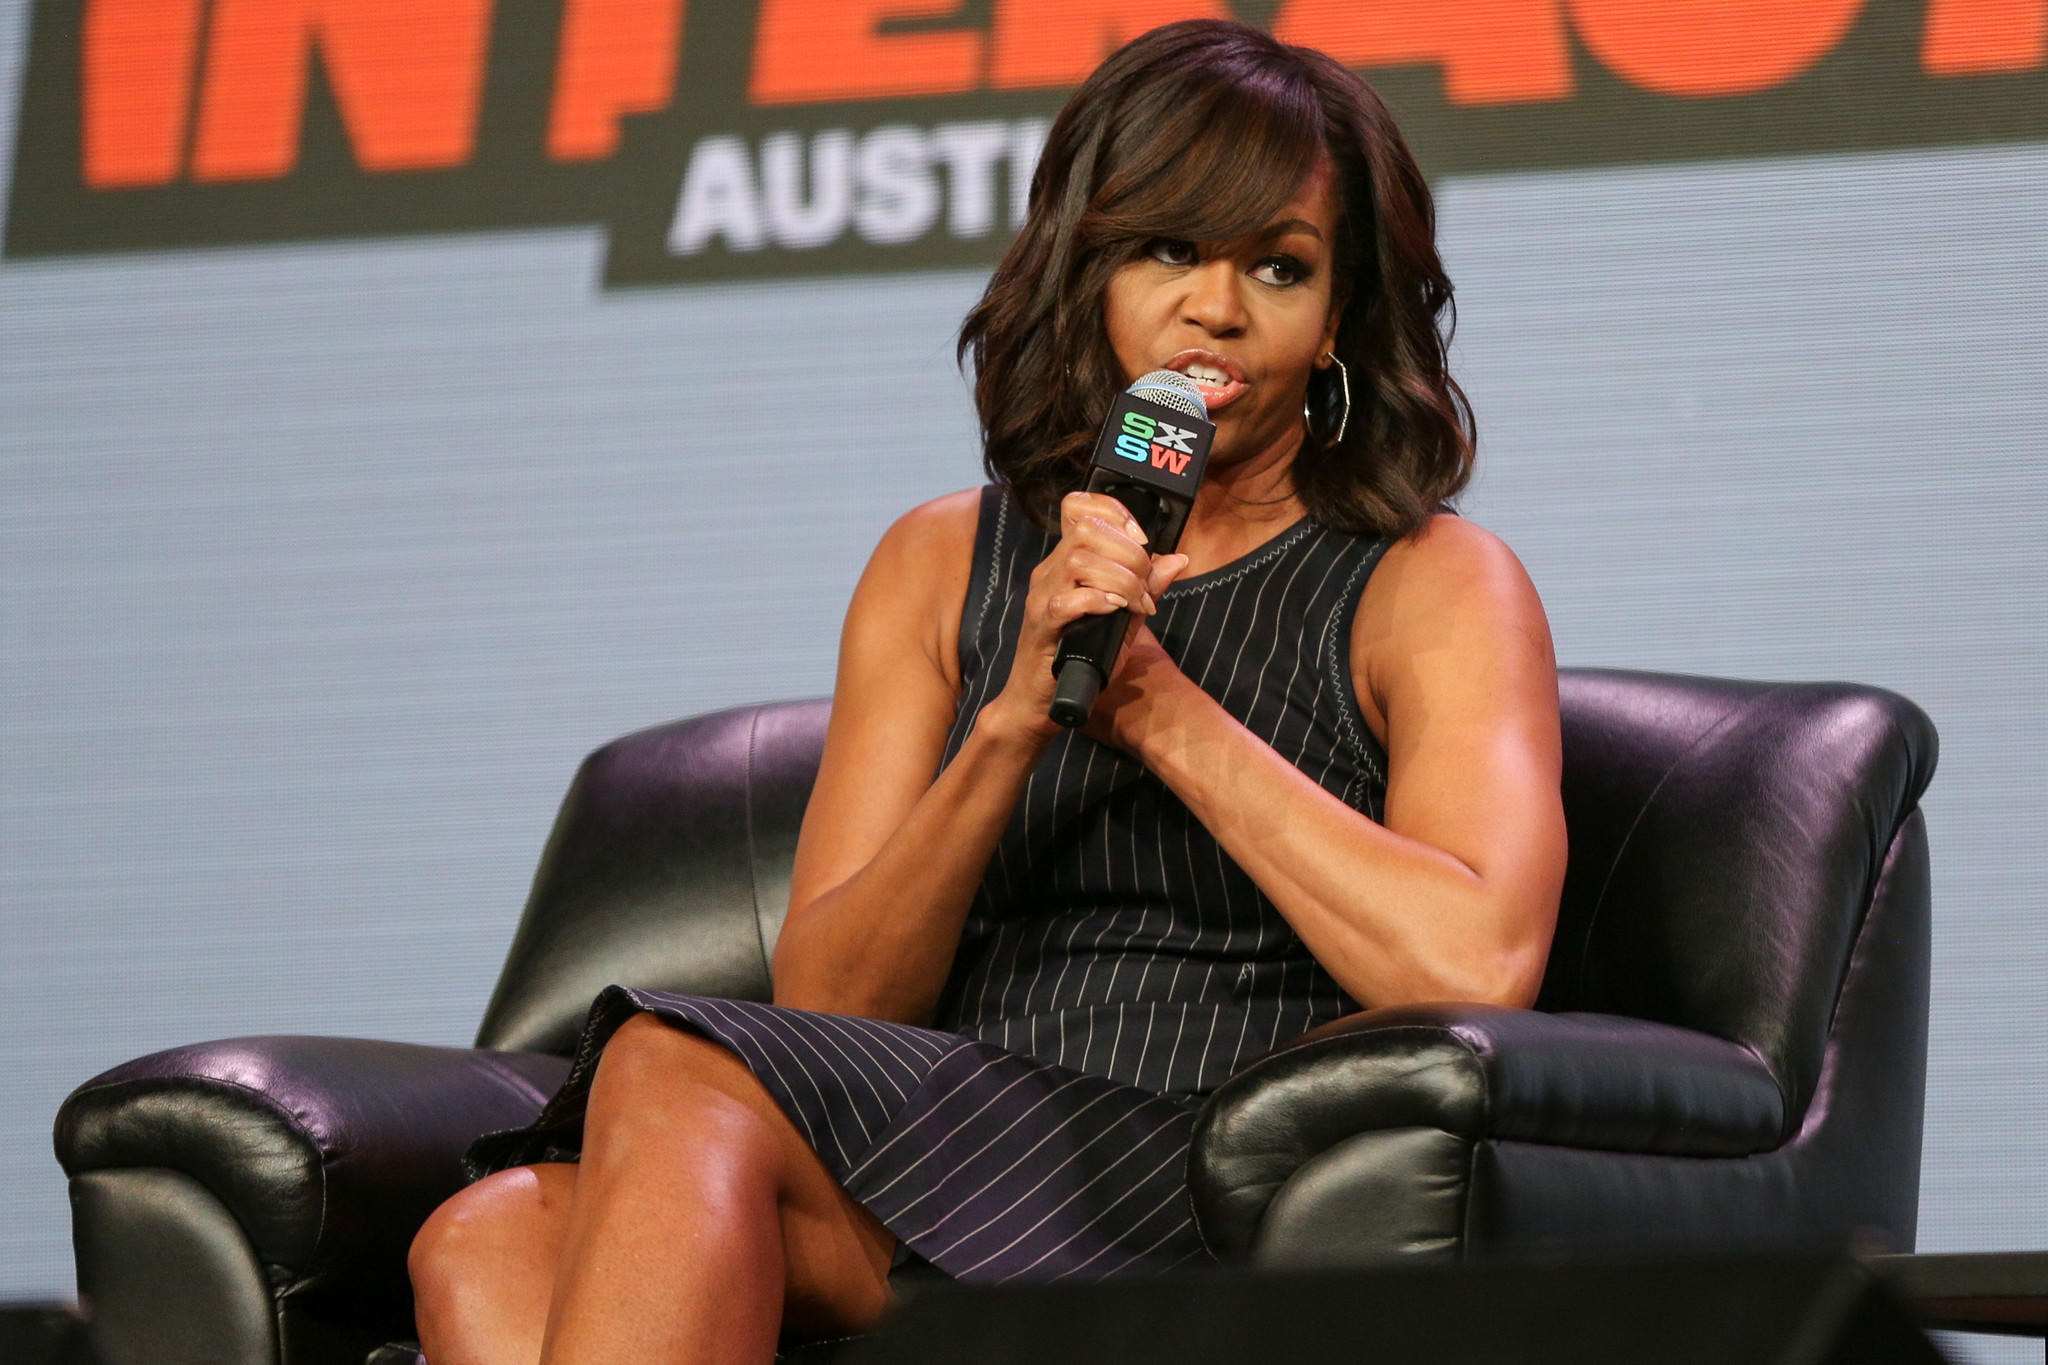 First Lady Michelle Obama speaks during a panel discussion at the 2016 South by Southwest festival. (Rich Fury / Invision / Associated Press)